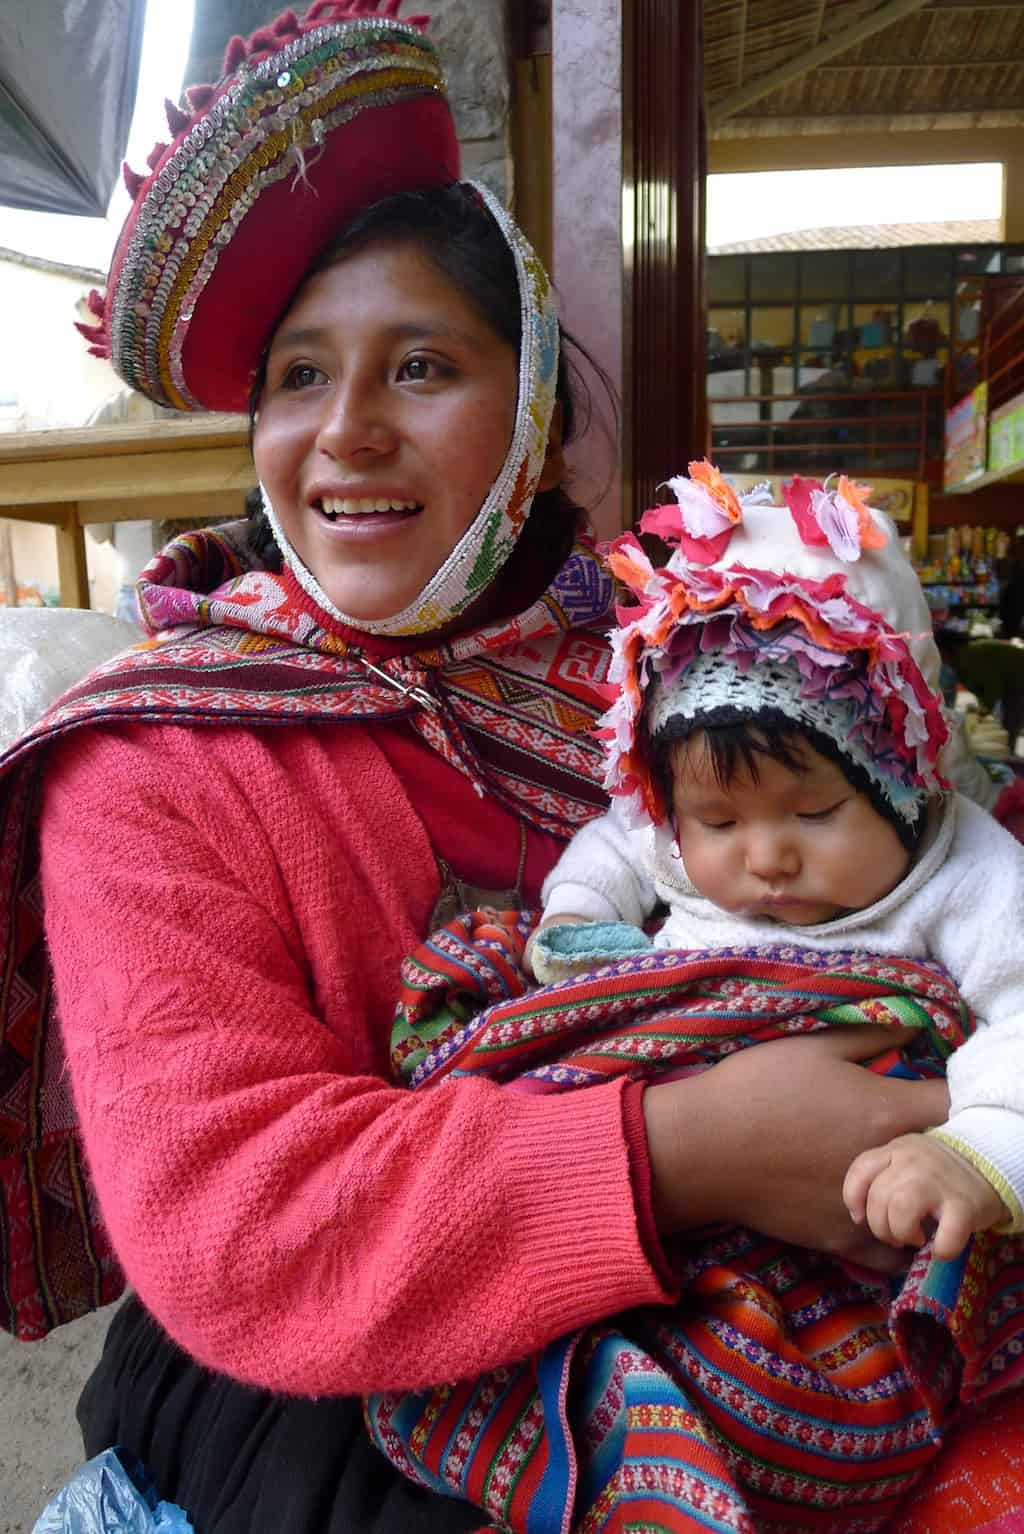 Peru mother and child